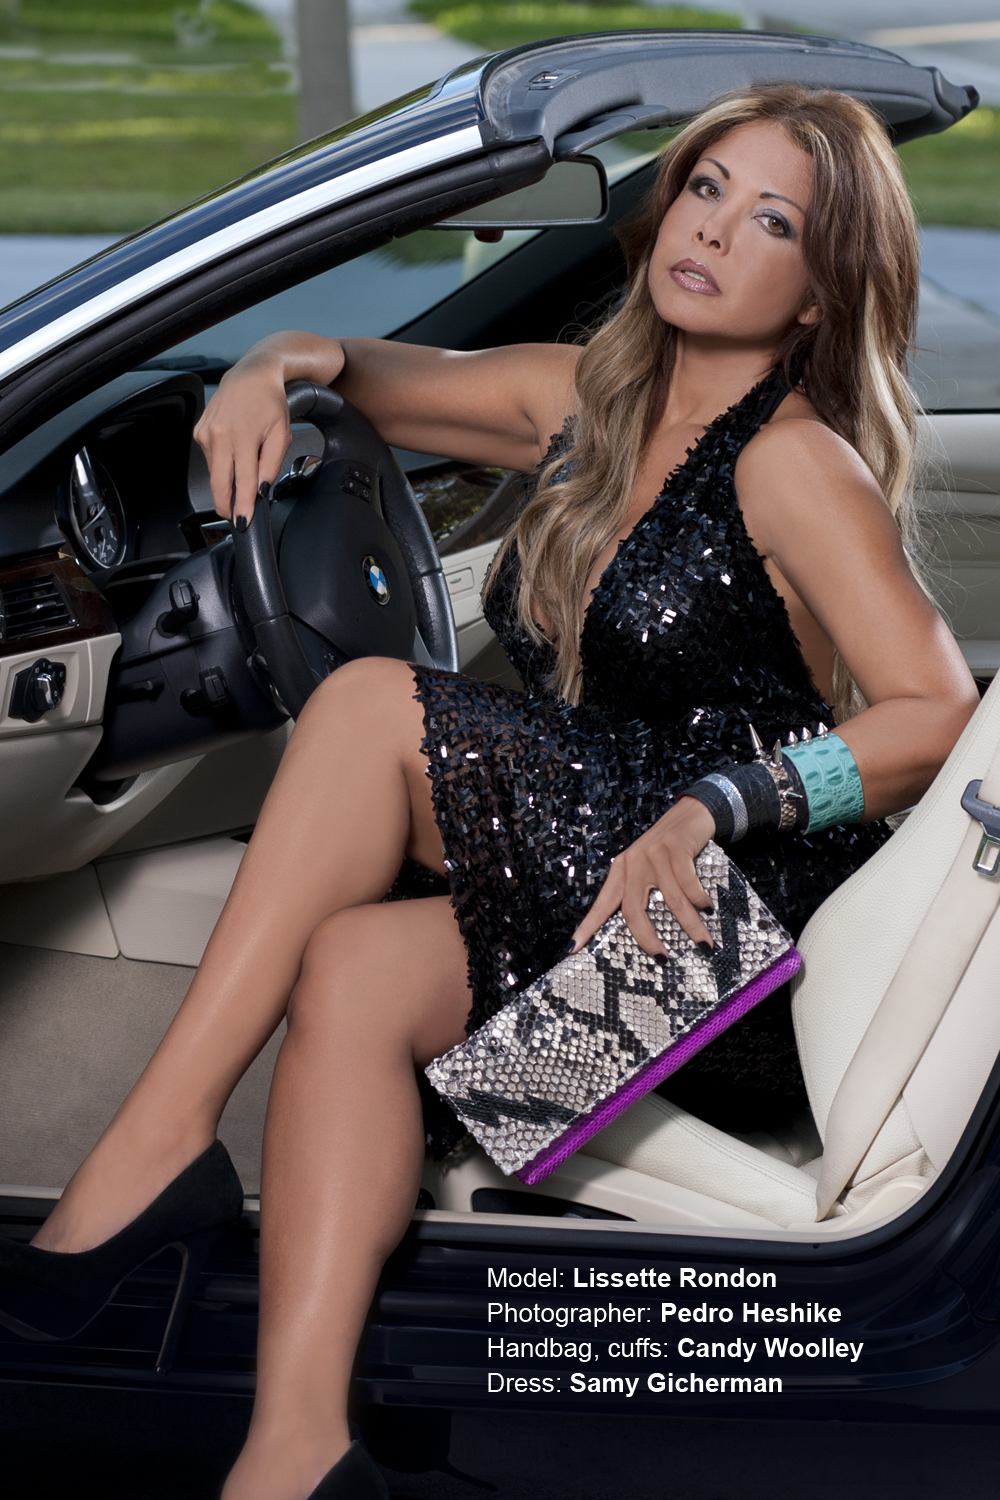 Lissette Rondon sporting a Candy Woolley elongated python clutch